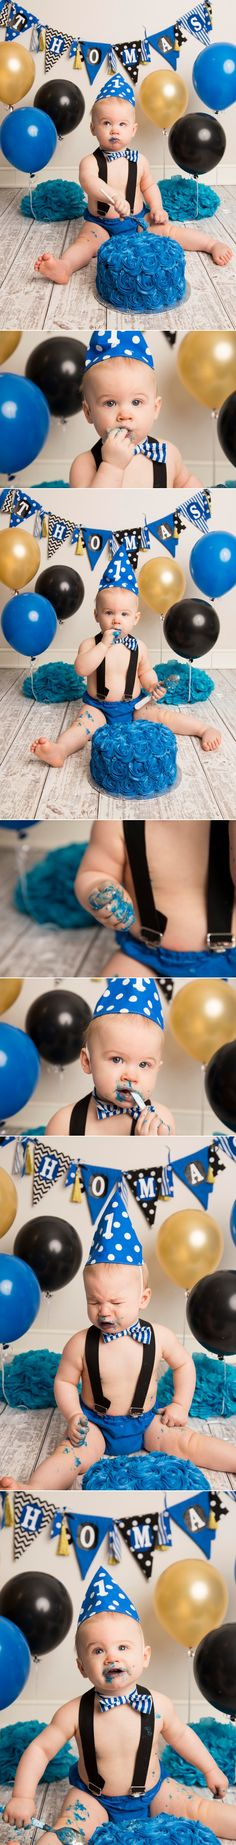 Thomas celebrates his first birthday with a Blue, Black and Gold Cake Smash! | Holly Schaeffer Photography | Cake Smash Photographer